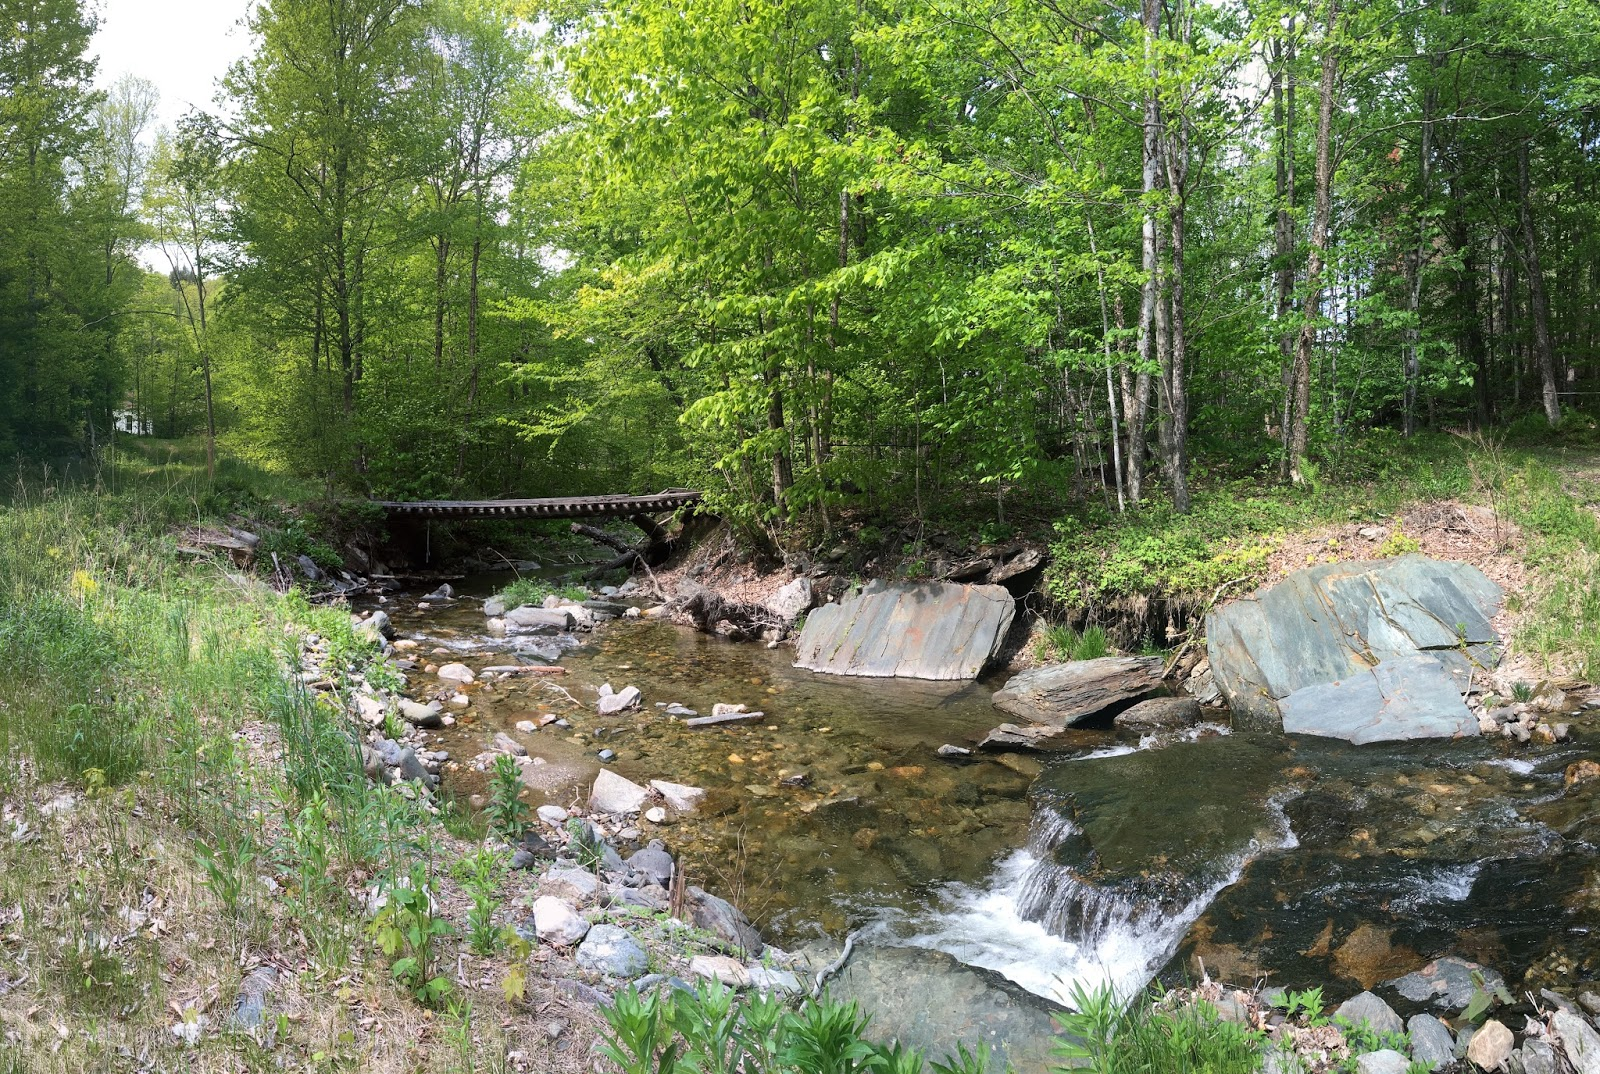 Trout stream day dreams may 2016 for Fly fishing massachusetts